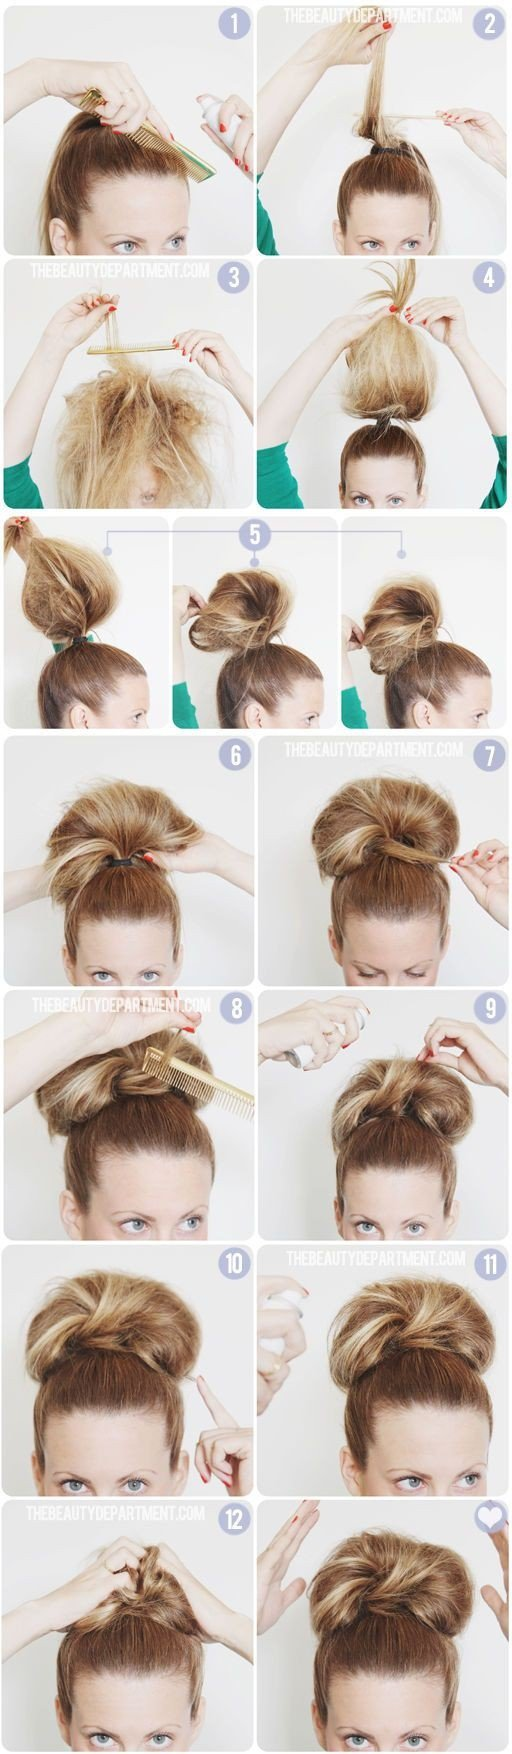 Interesting Huge Bun Hairstyle Tutorial